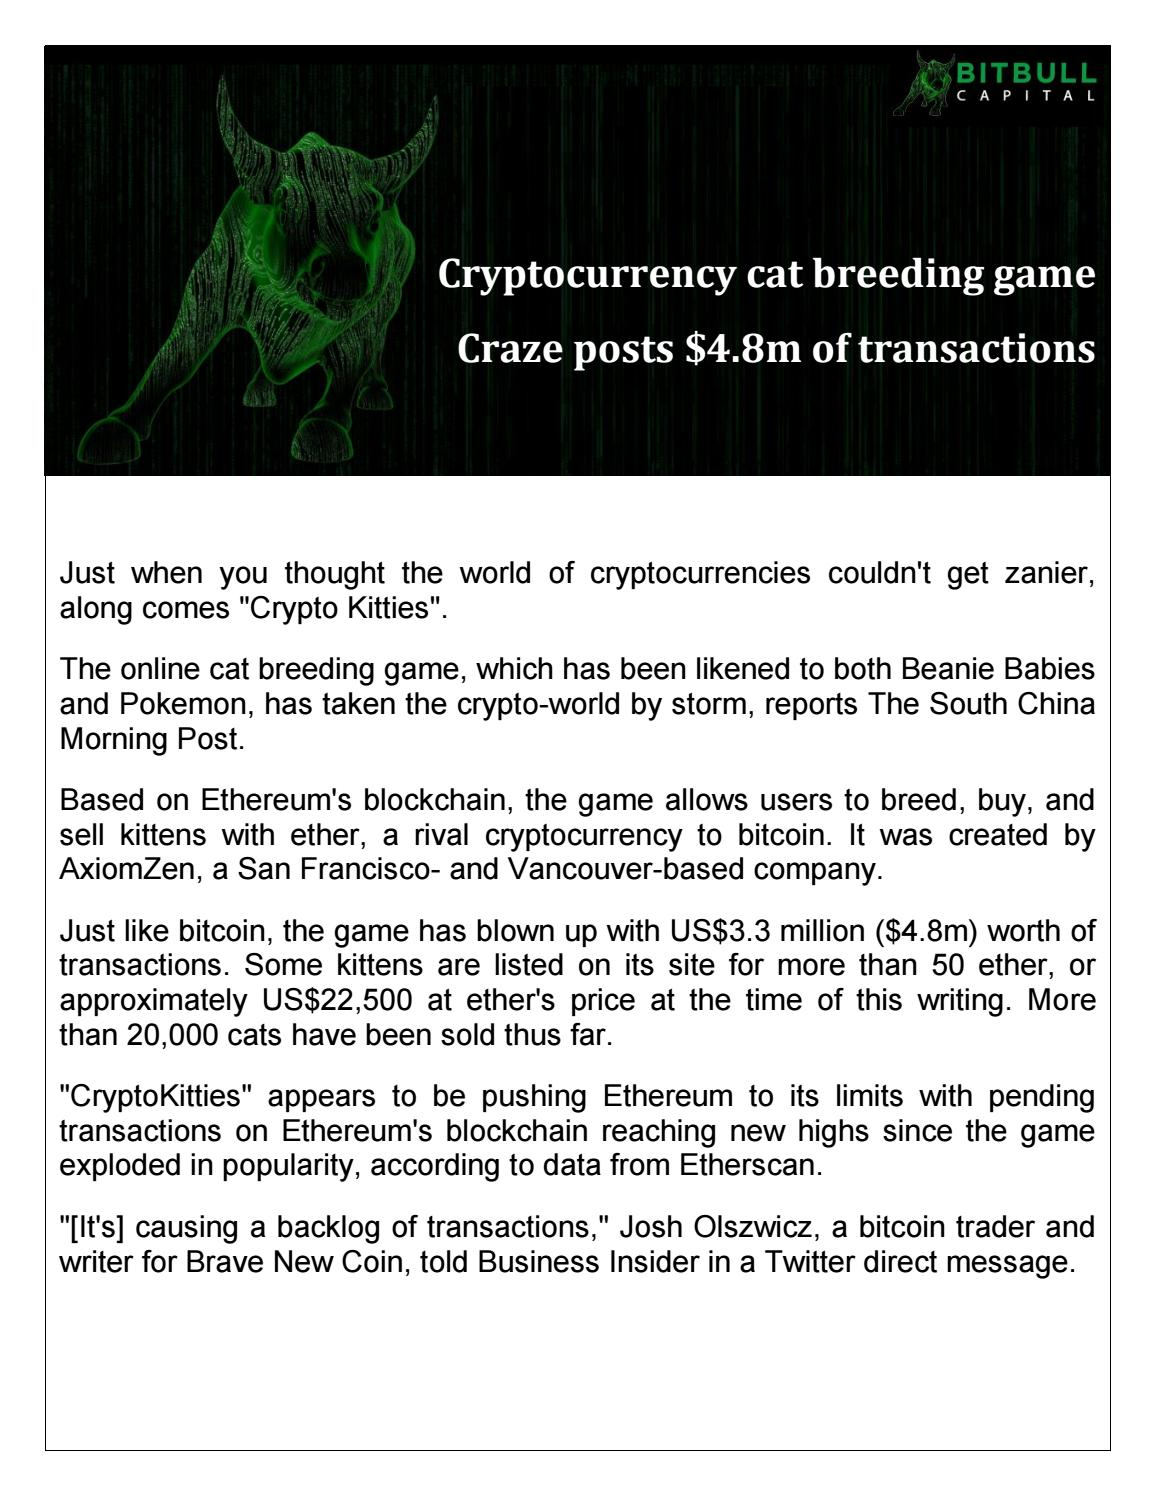 kitten coin cryptocurrency